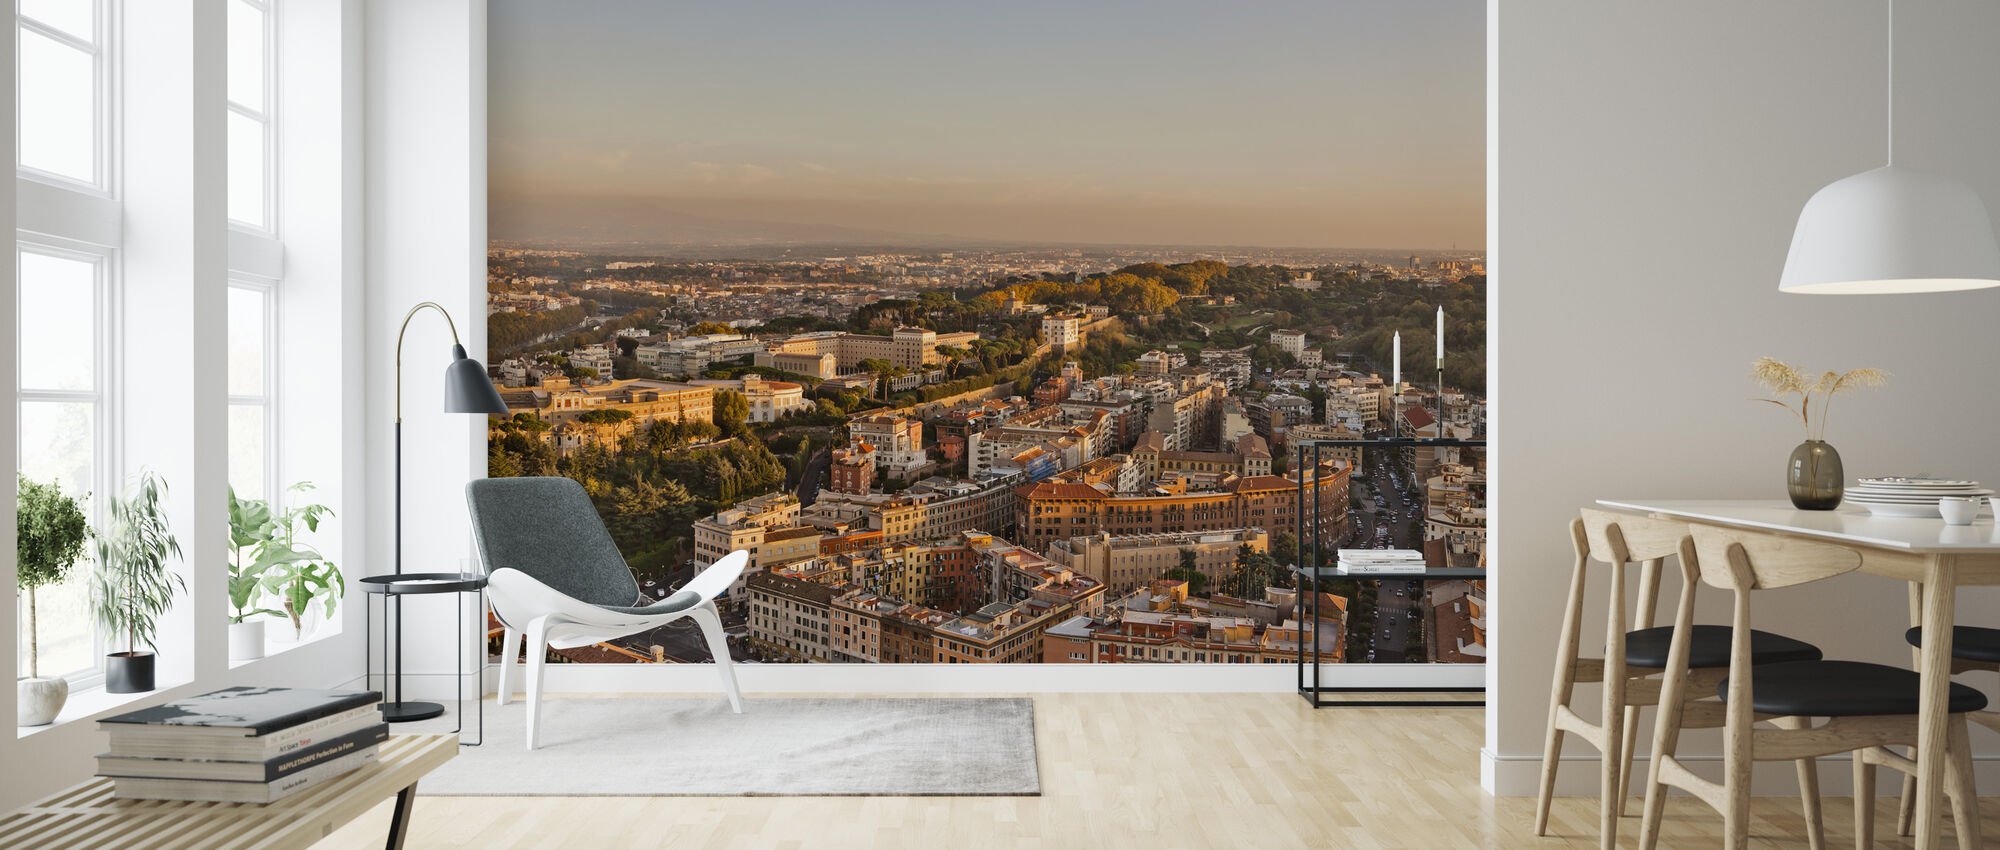 Rome Cityscape - Wallpaper - Living Room